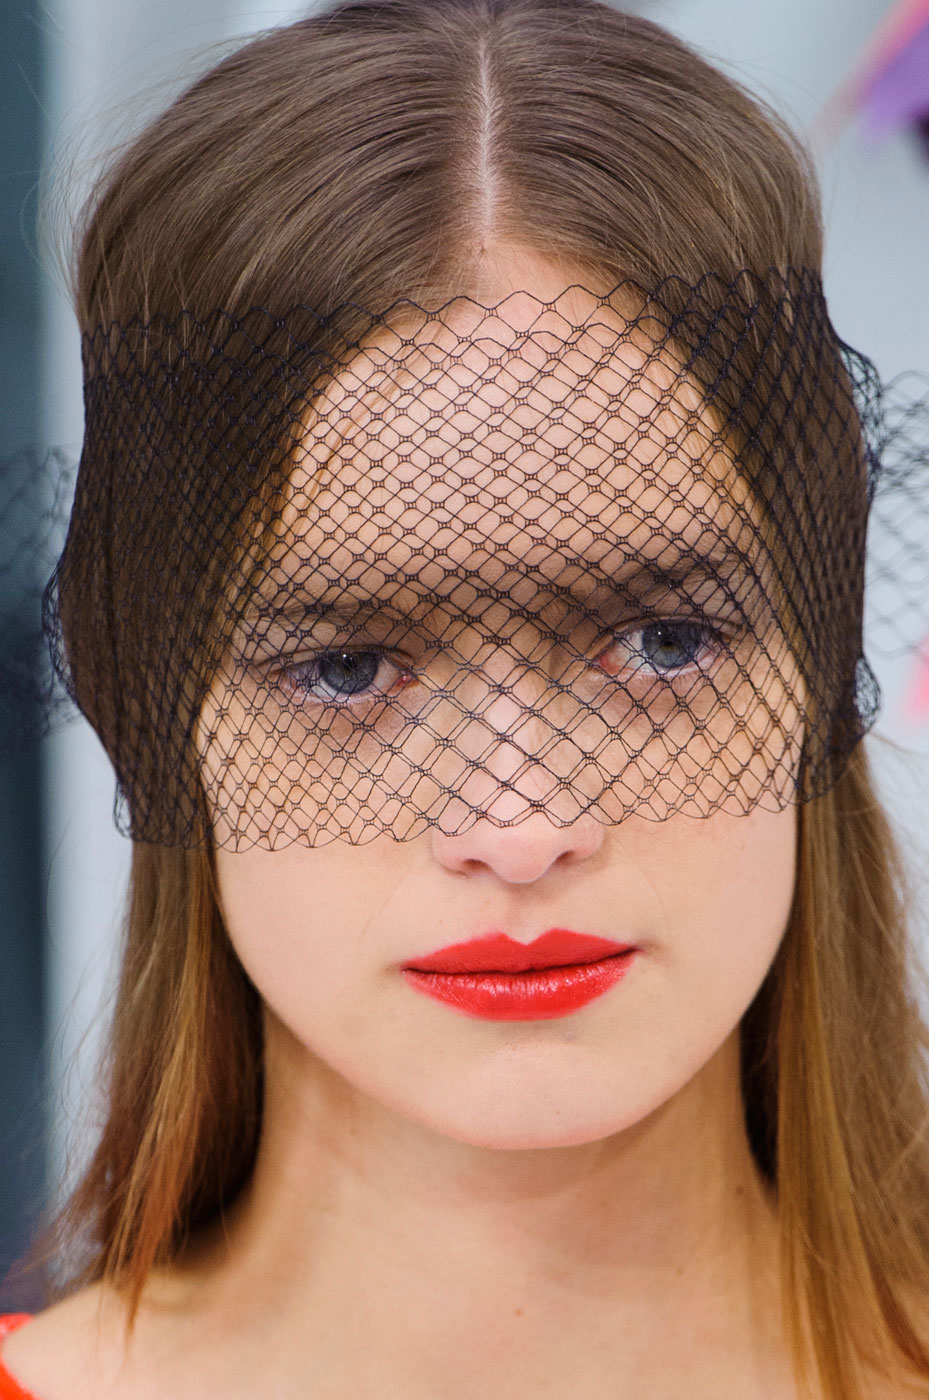 Chanel-fashion-runway-show-close-ups-haute-couture-paris-spring-summer-2015-the-impression-102